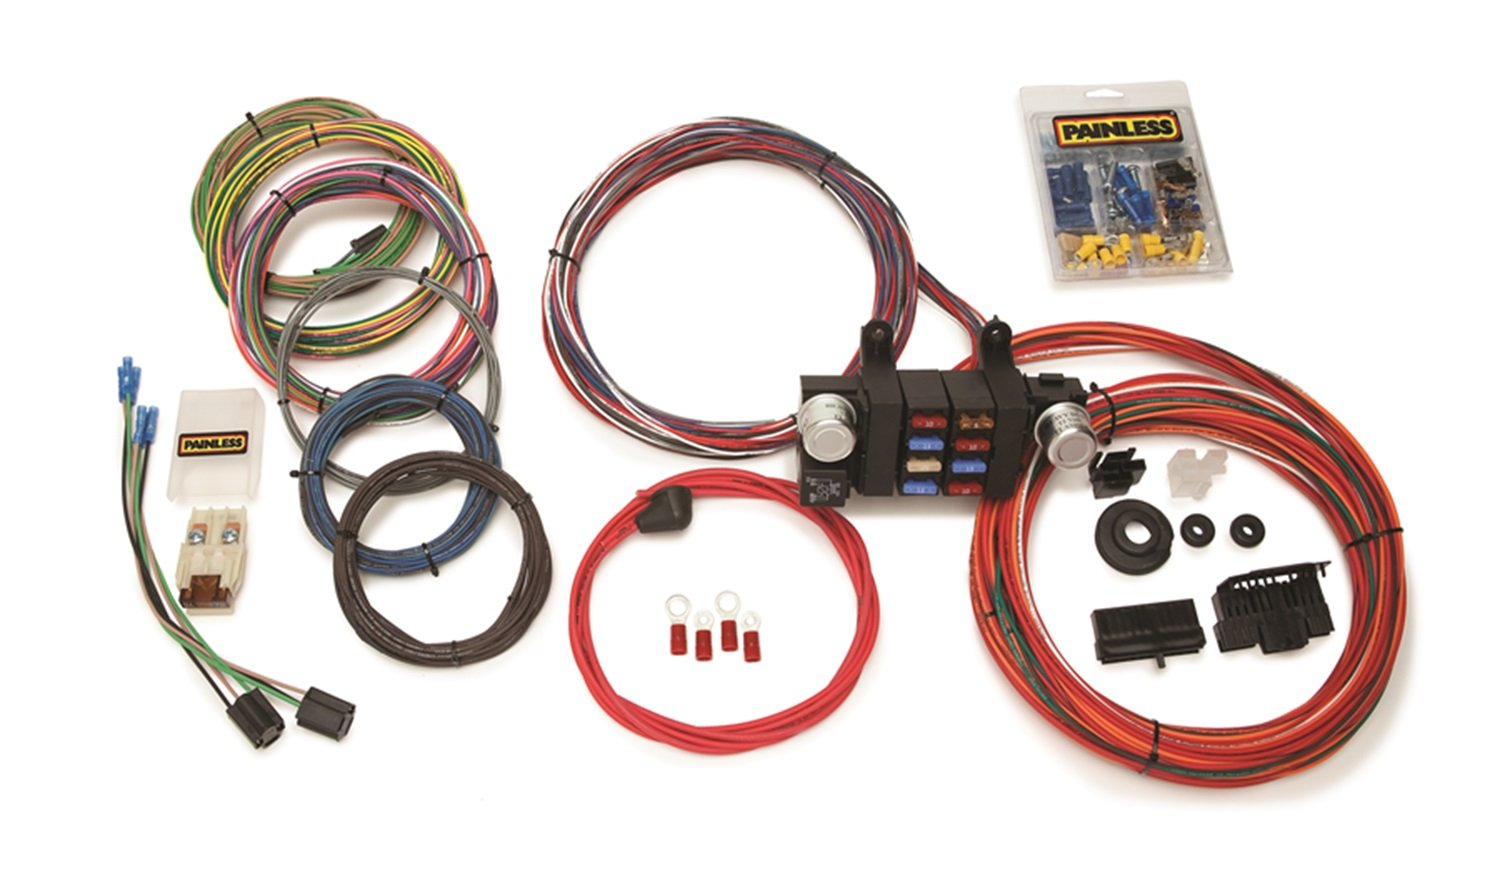 714FypRjpJL._SL1500_ amazon com painless wiring 10308 8 circuit mod t bucket h Painless Wiring Harness Chevy at bayanpartner.co